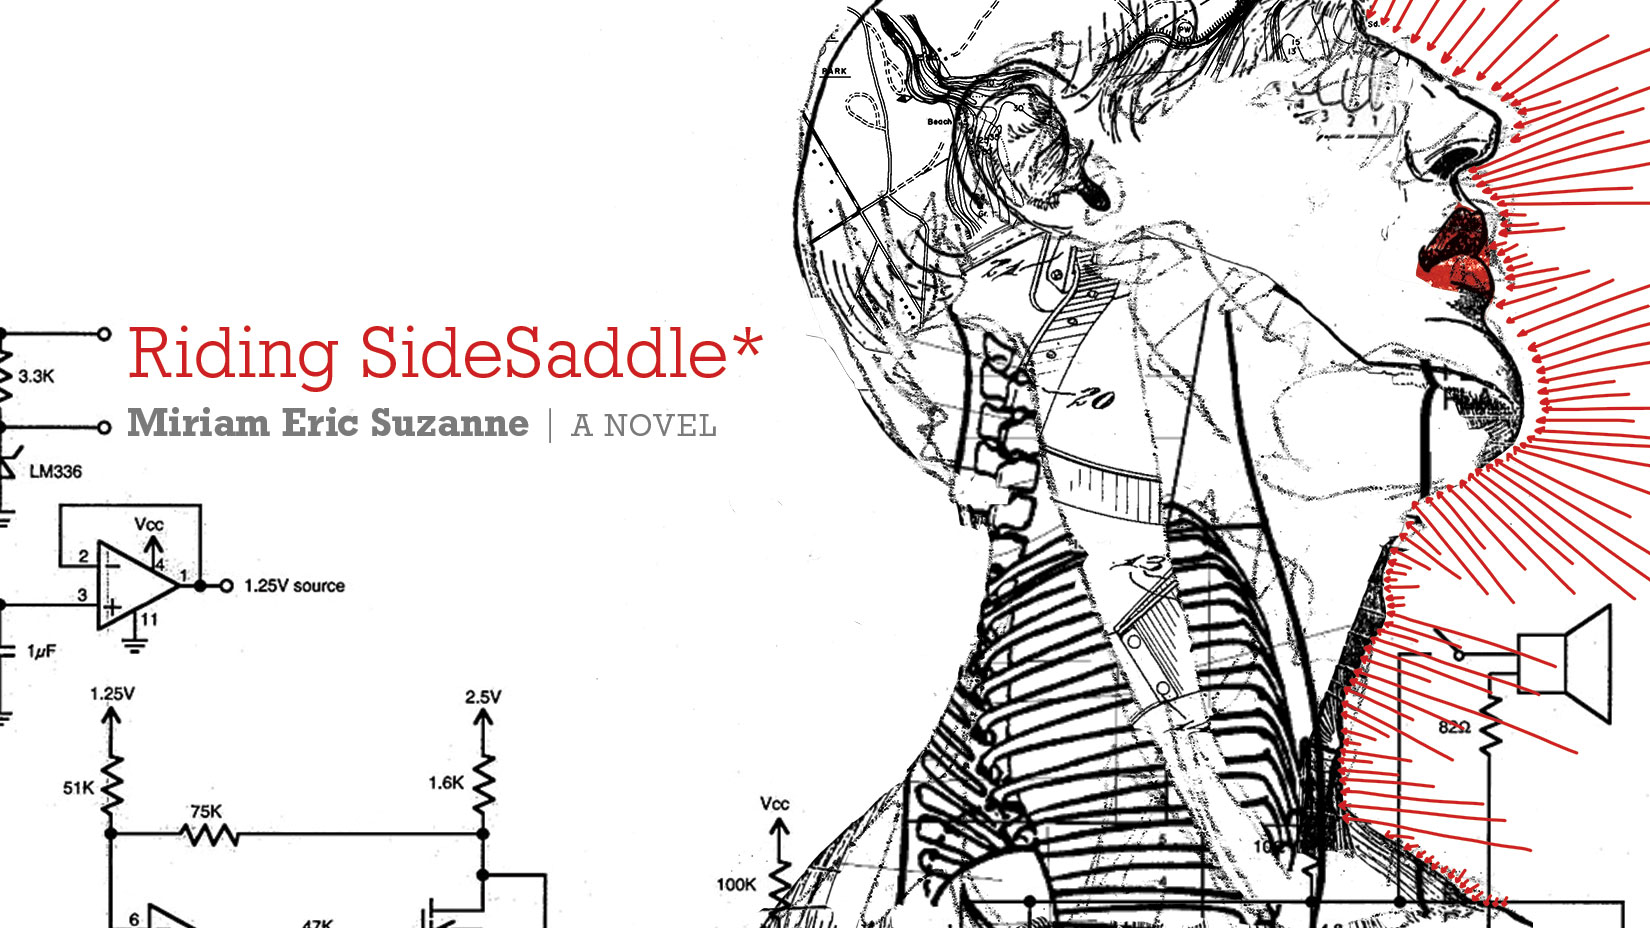 Riding SideSaddle*